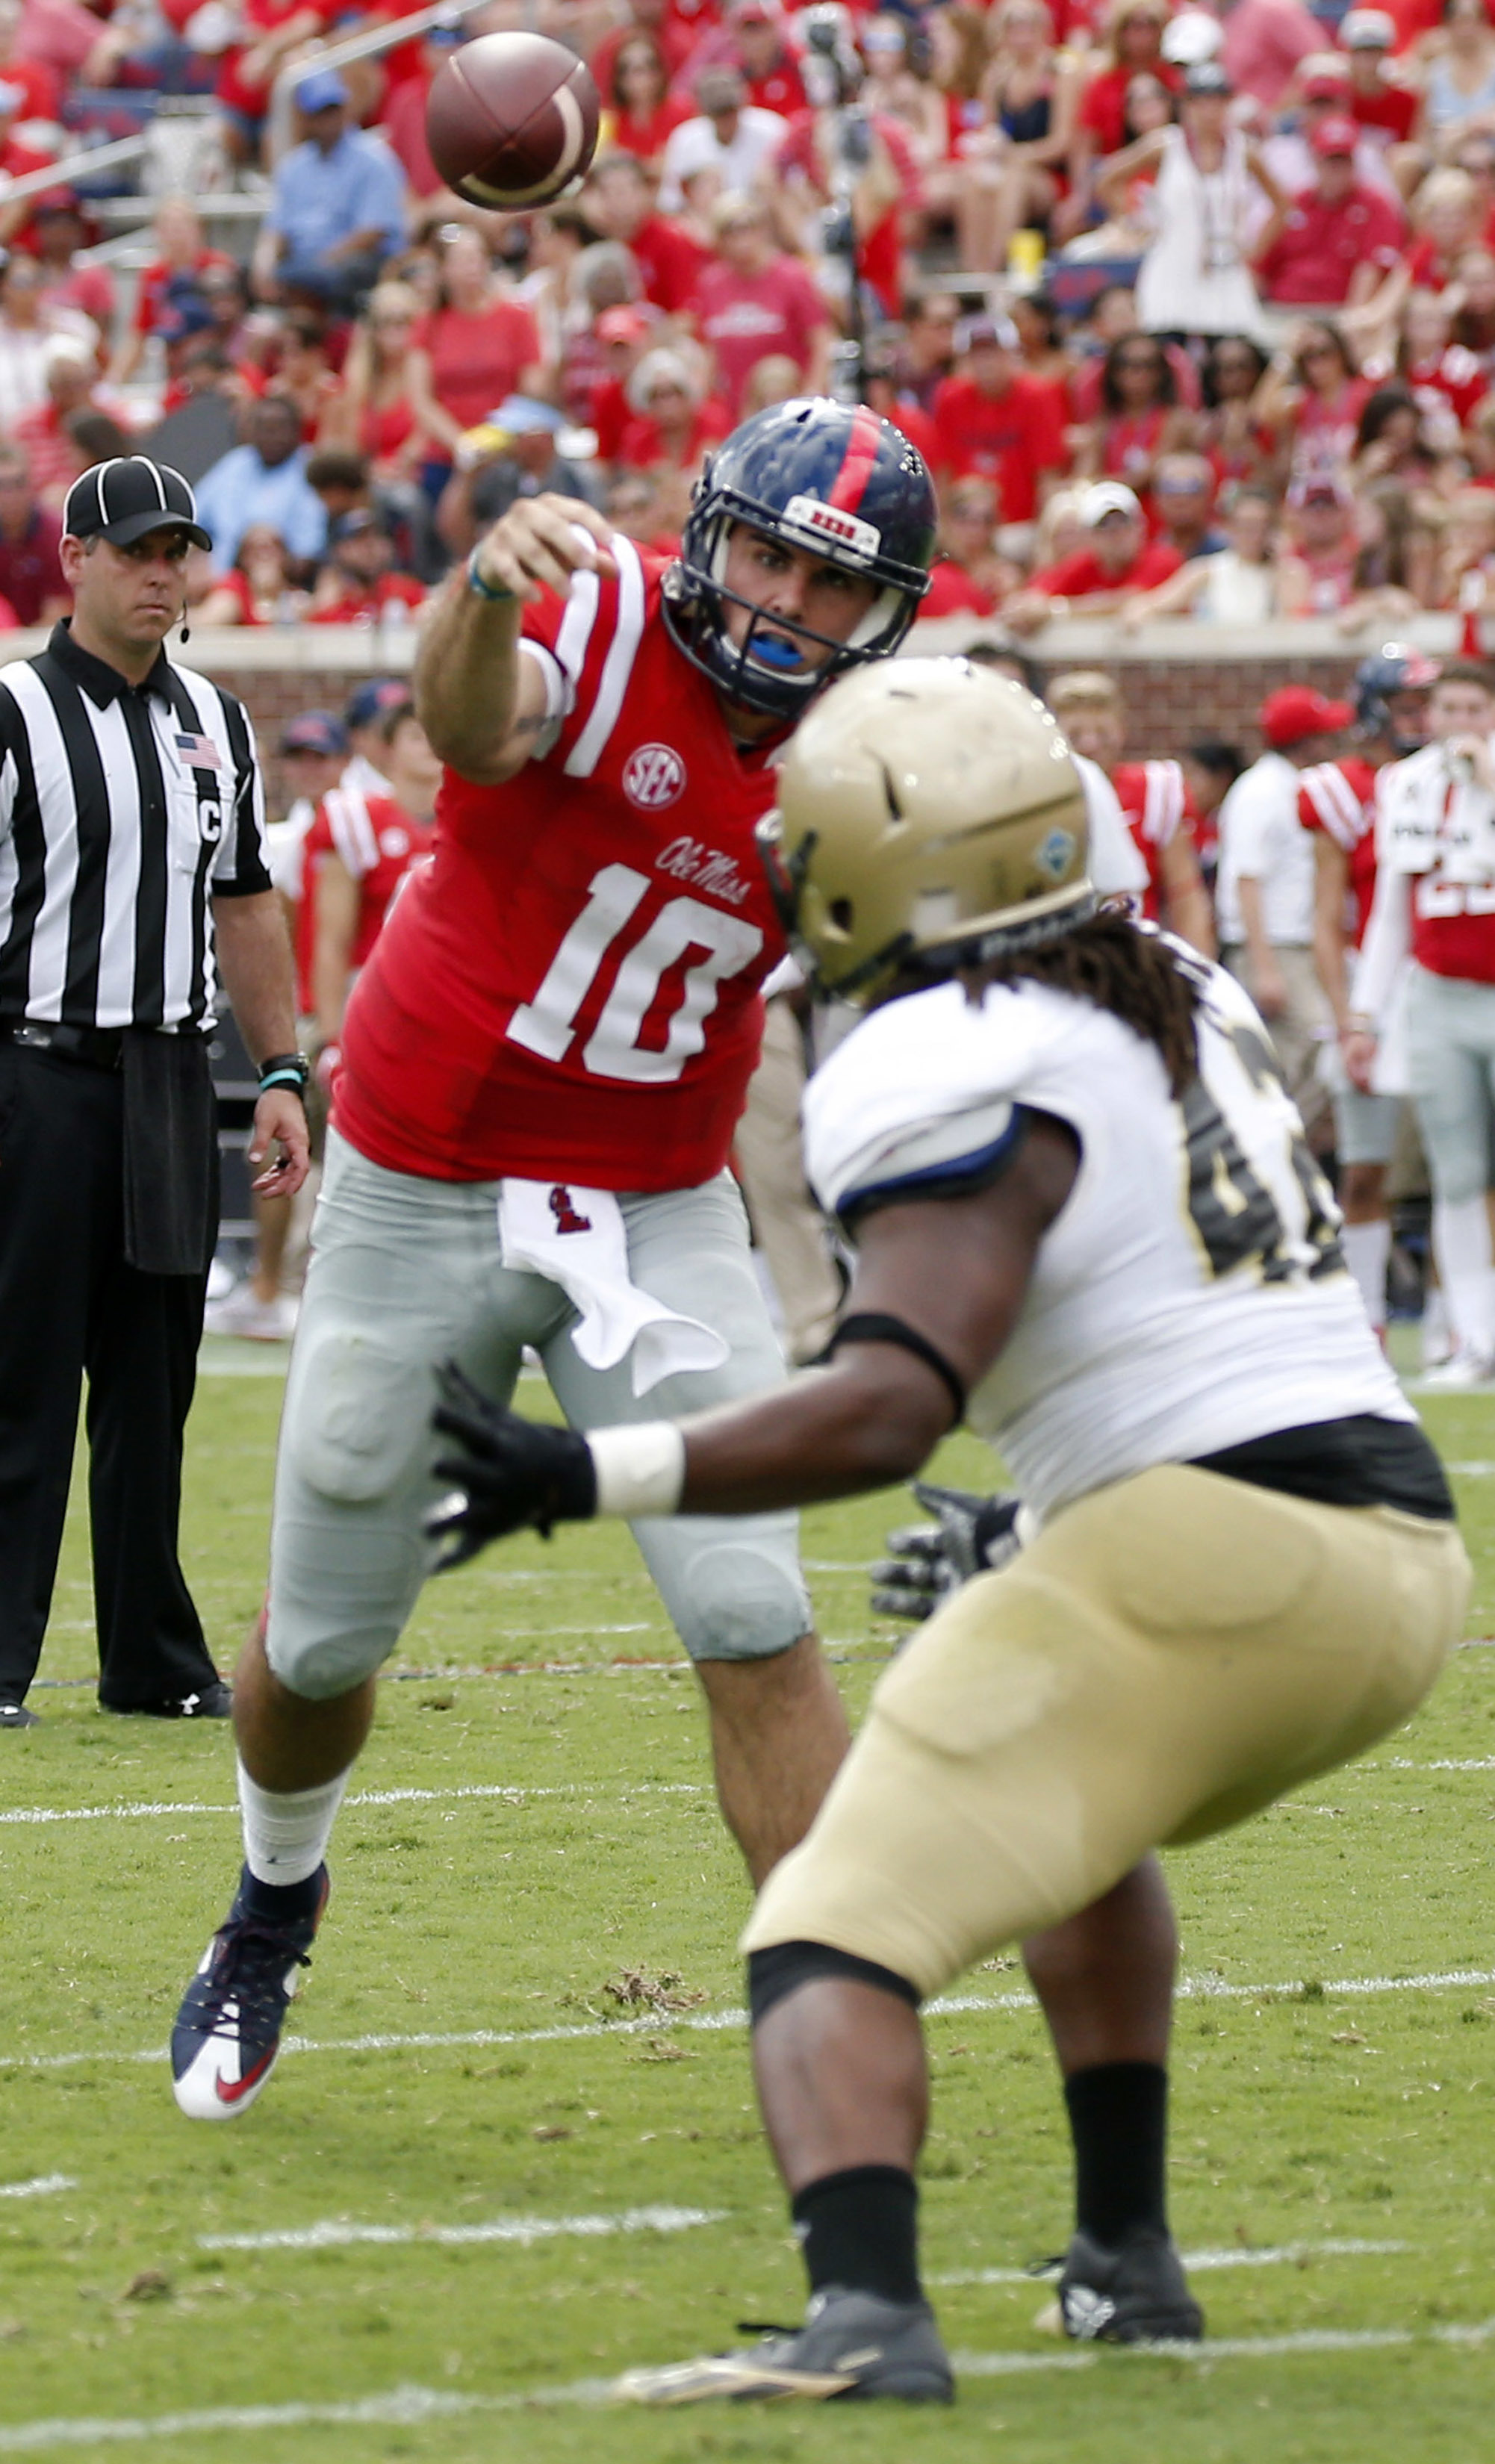 Mississippi quarterback Chad Kelly (10) throws a 6-yard touchdown pass to wide receiver Quincy Adeboyejo (8) in the first half of an NCAA college football game in Oxford, Miss., Saturday, Sept. 10, 2016. (AP Photo/Rogelio V. Solis)